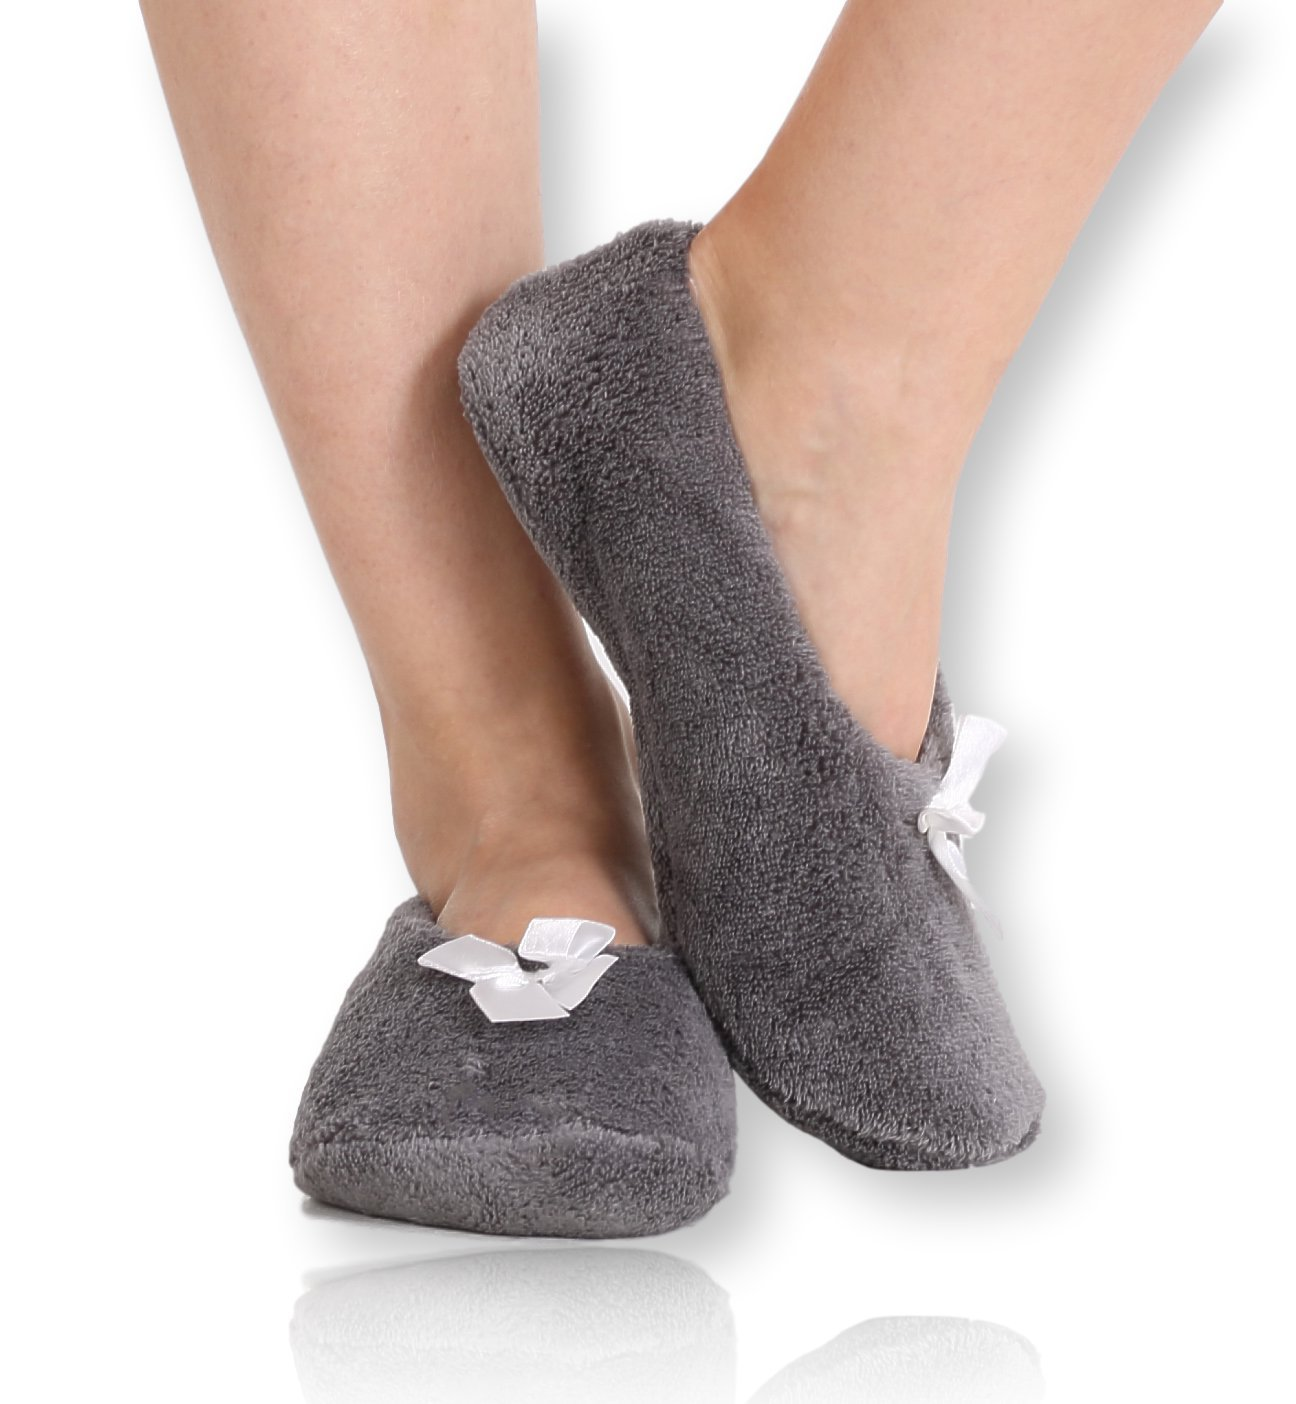 Pembrook Fuzzy Soft Coral Fleece Slippers – Gray - Medium (7-8) – Ballet Style with Non-Skid Sole – Faux Shearling Lining - Great Plush Slip On House Slippers for adults, women, girls